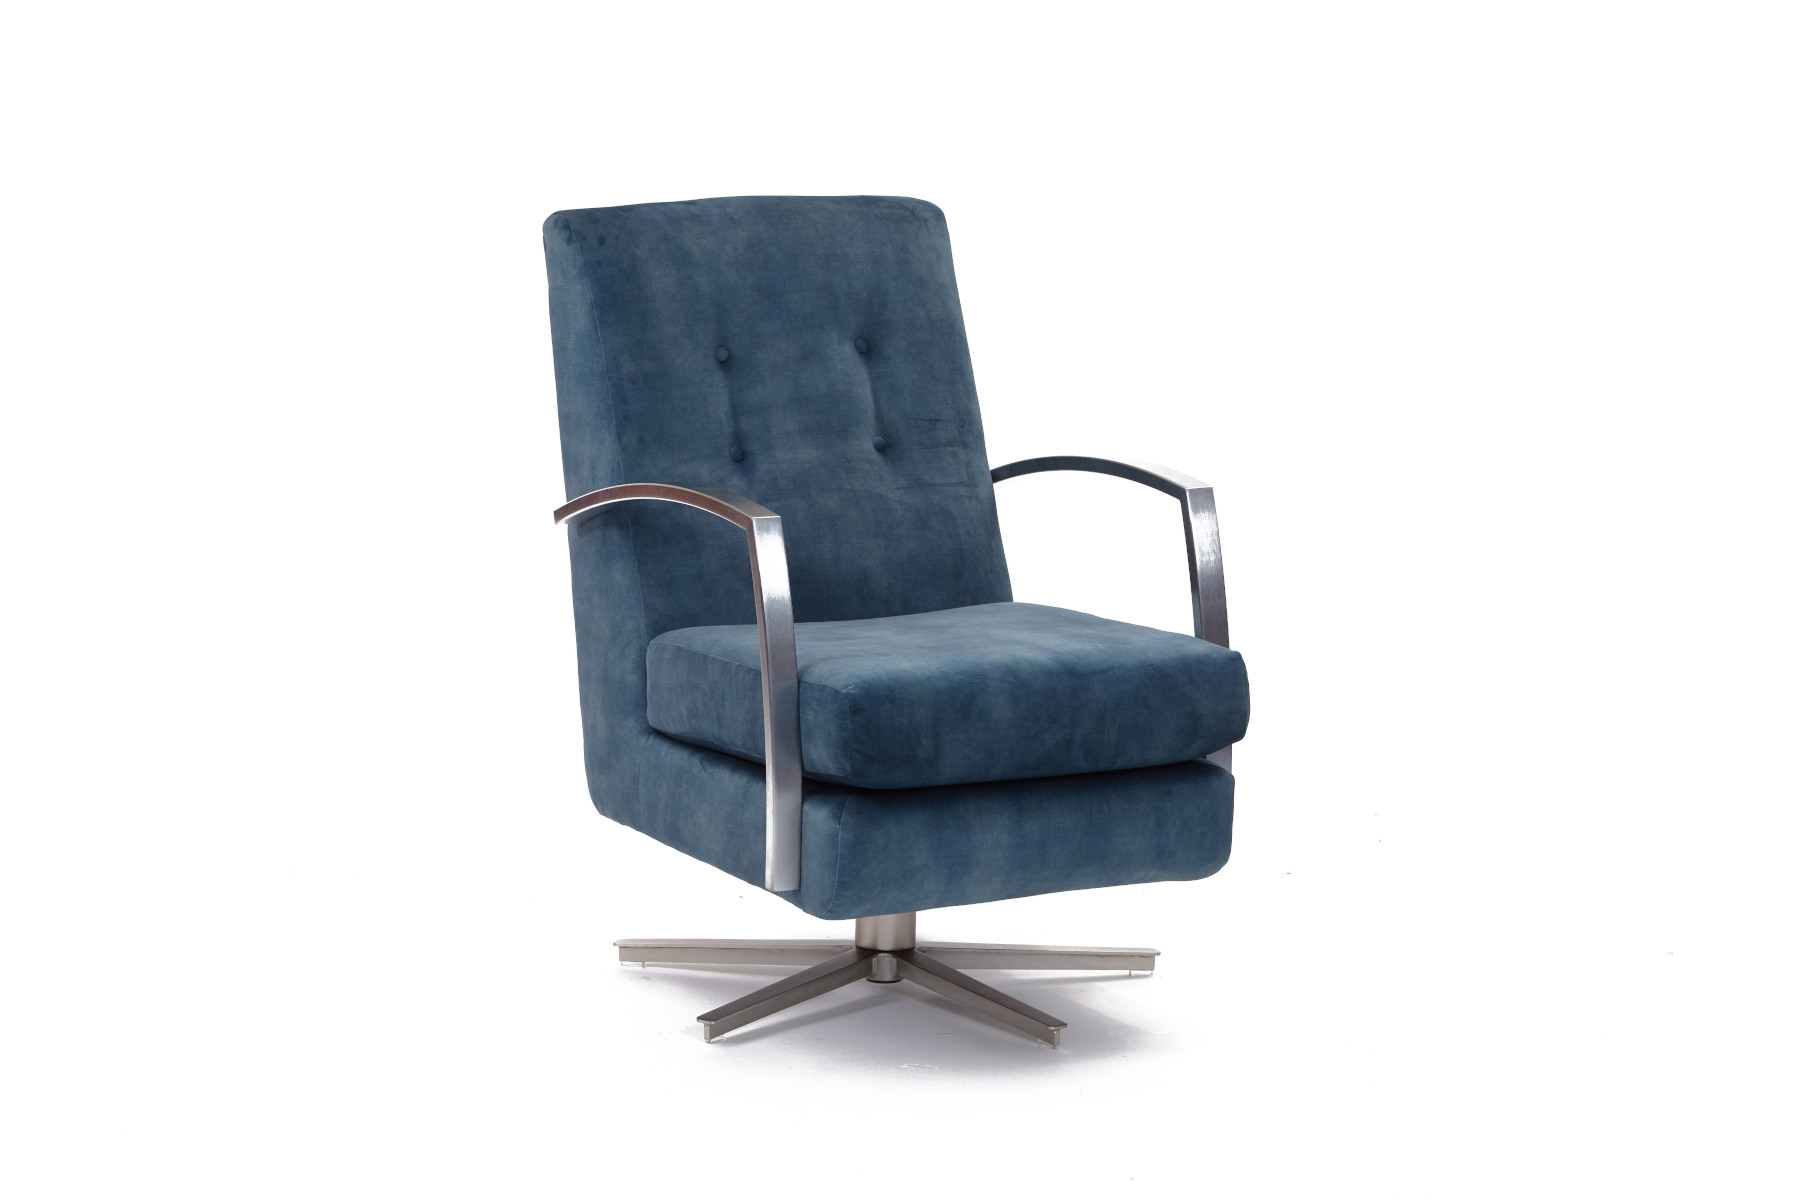 Bromyard Oslo Swivel Chair Grade D